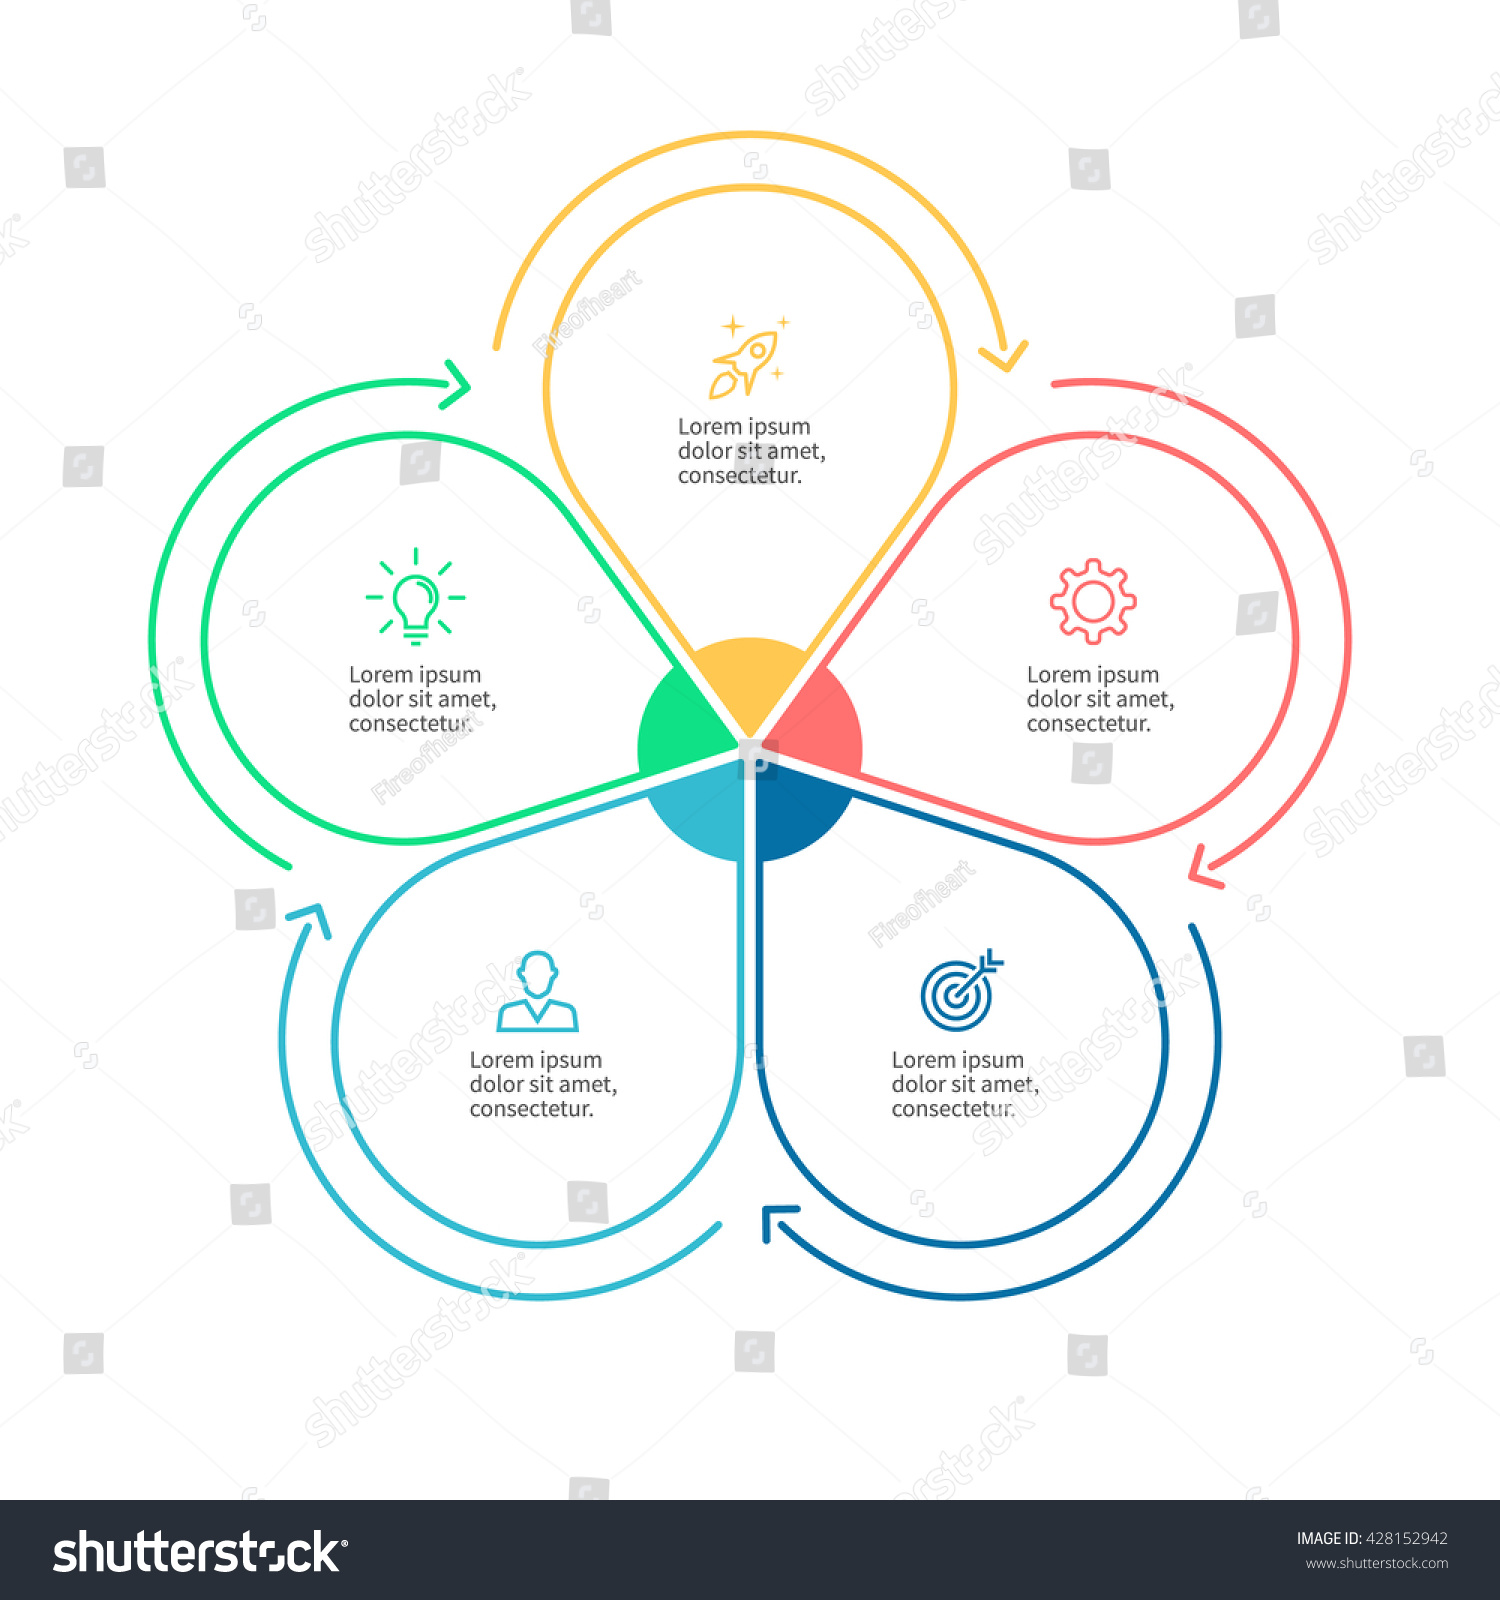 Outline circular infographic minimalistic diagram chart em vetor outline circular infographic minimalistic diagram chart graph with 5 steps vector design ccuart